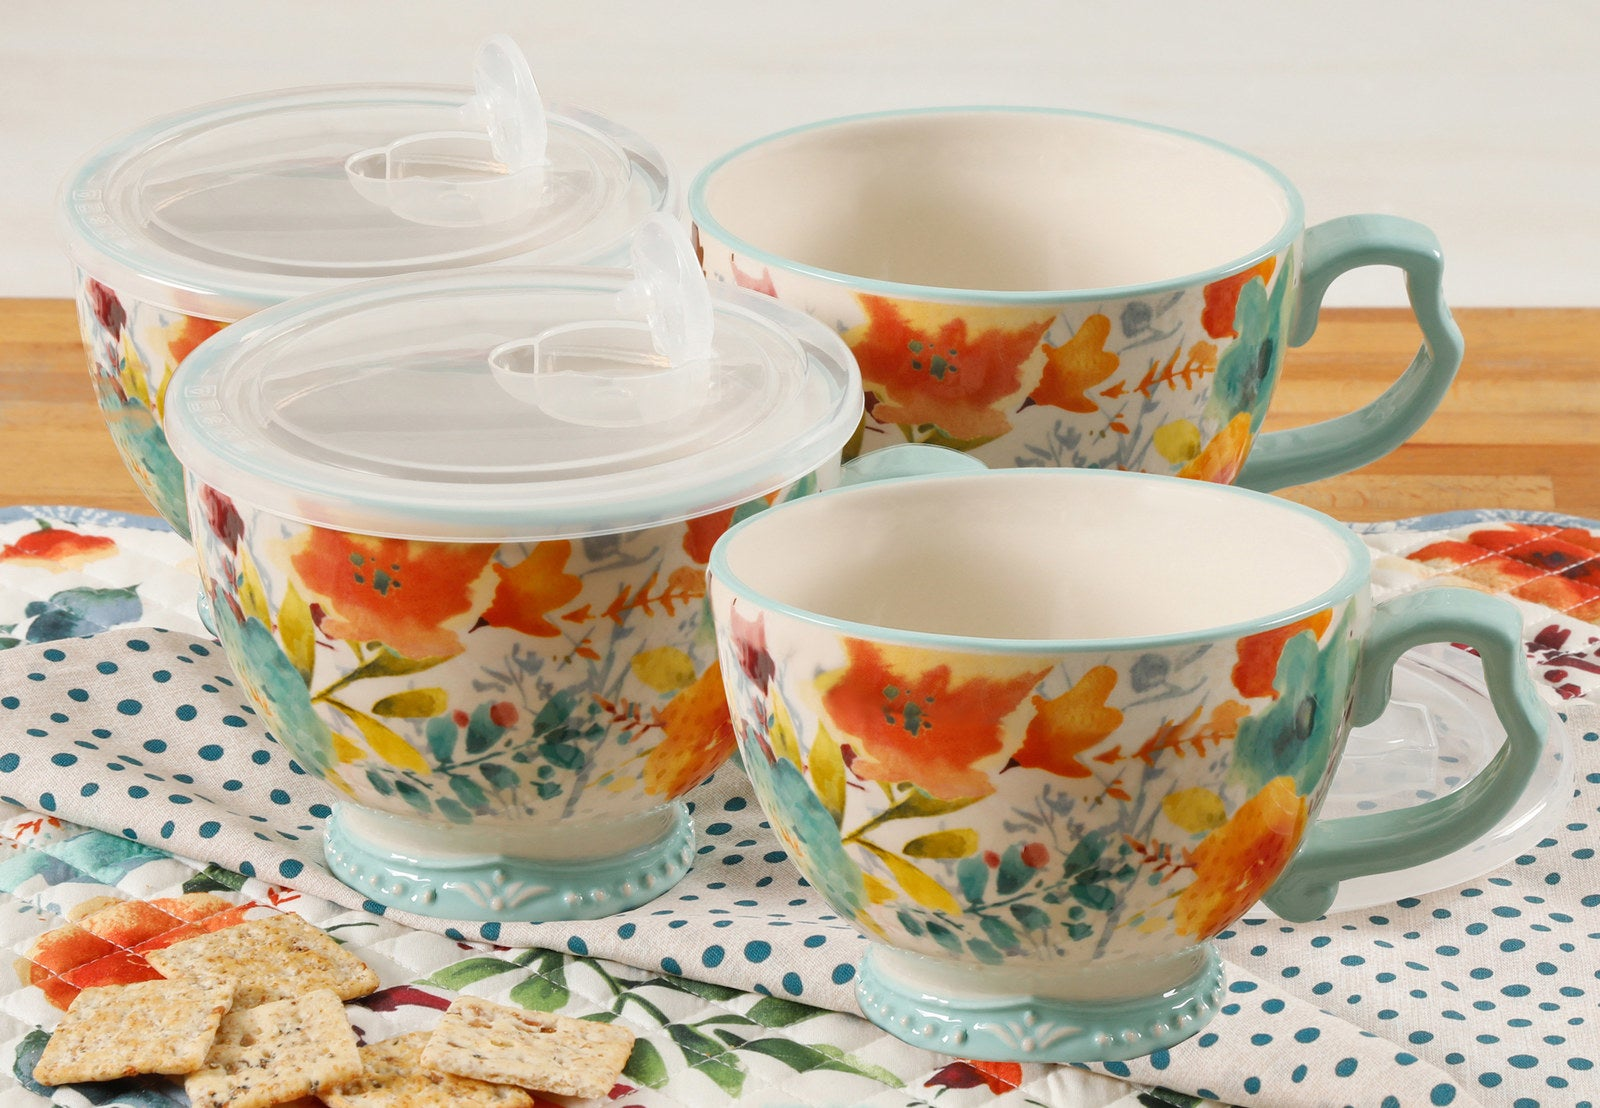 These are made of durable stoneware and are microwave- and dishwasher-safe!Get them from Walmart or Jet for $19.52.